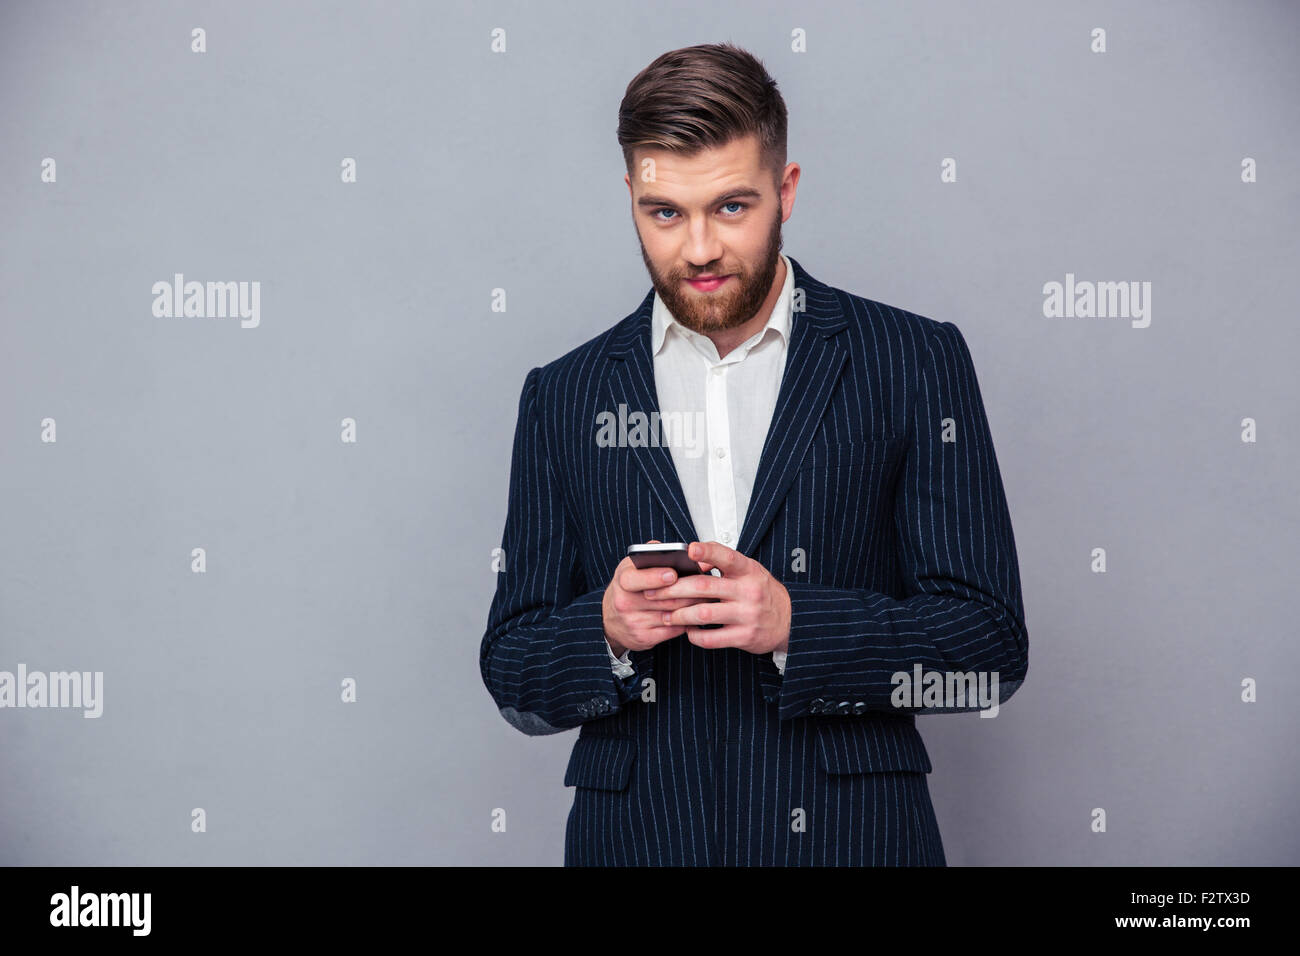 Portrait of a handsome businessman using smartphone over gray background and looking at camera Stock Photo